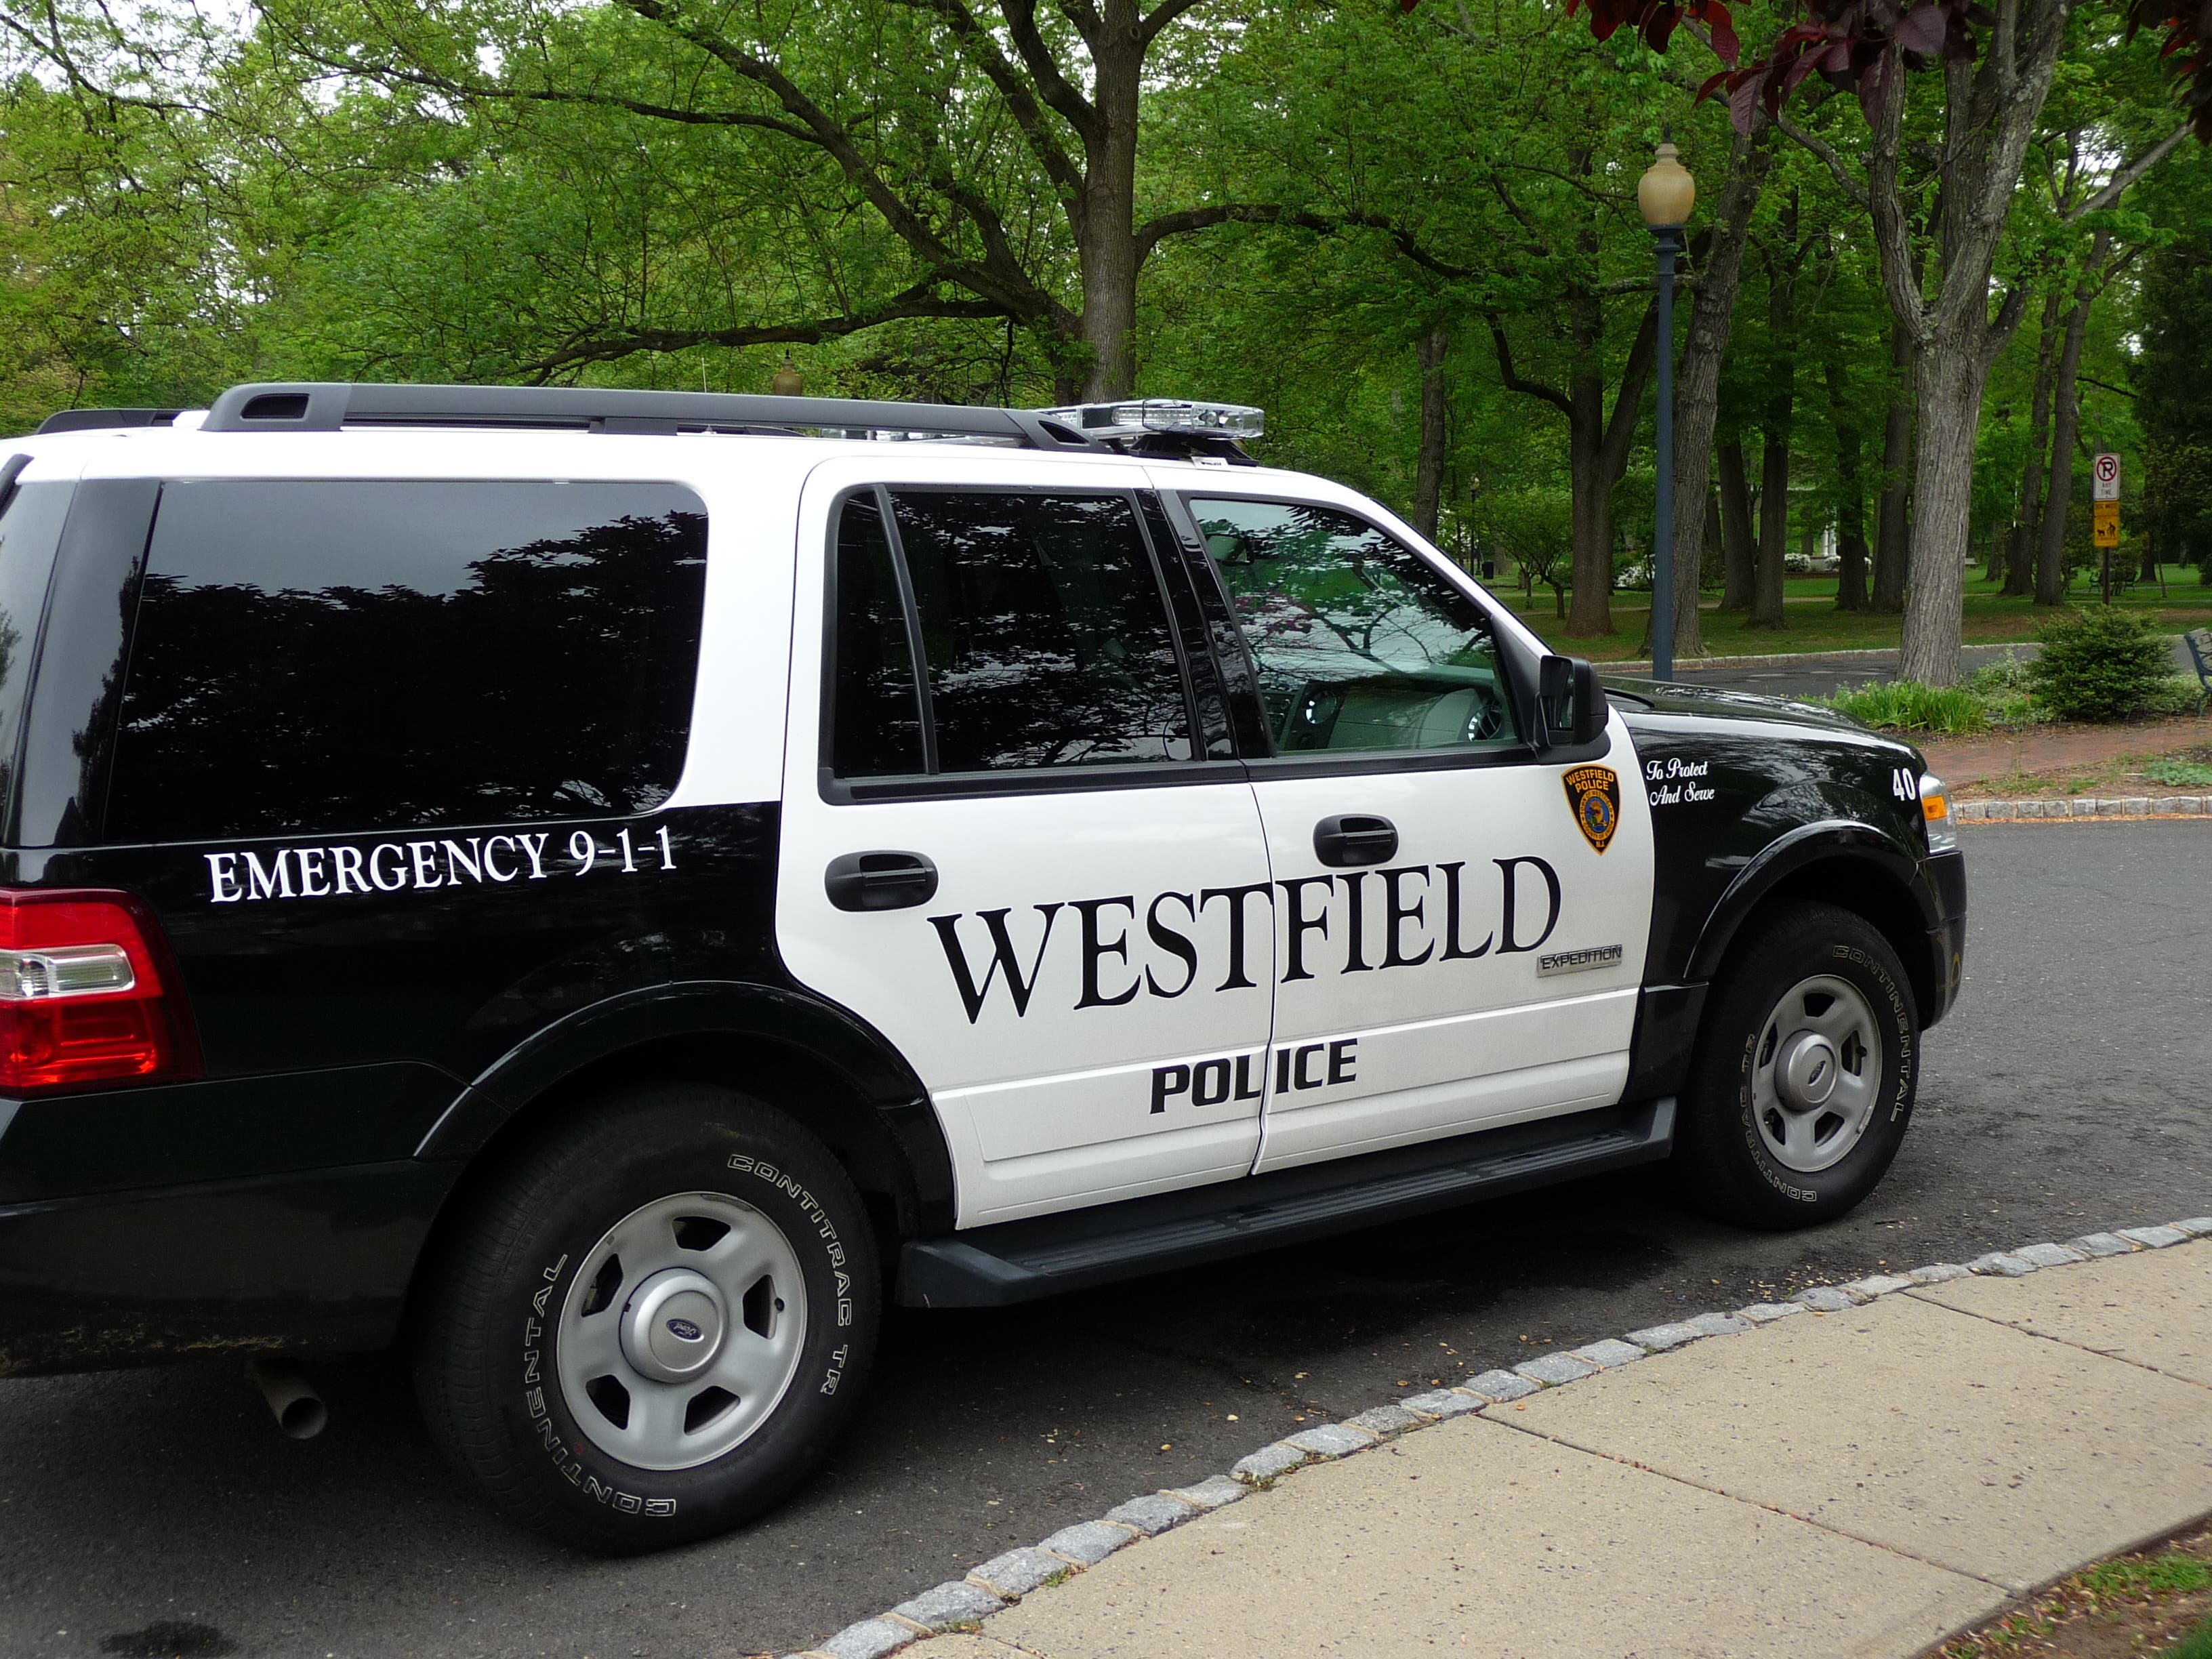 Police Blotter: DUI, Theft and an Airgun | Westfield, NJ Patch